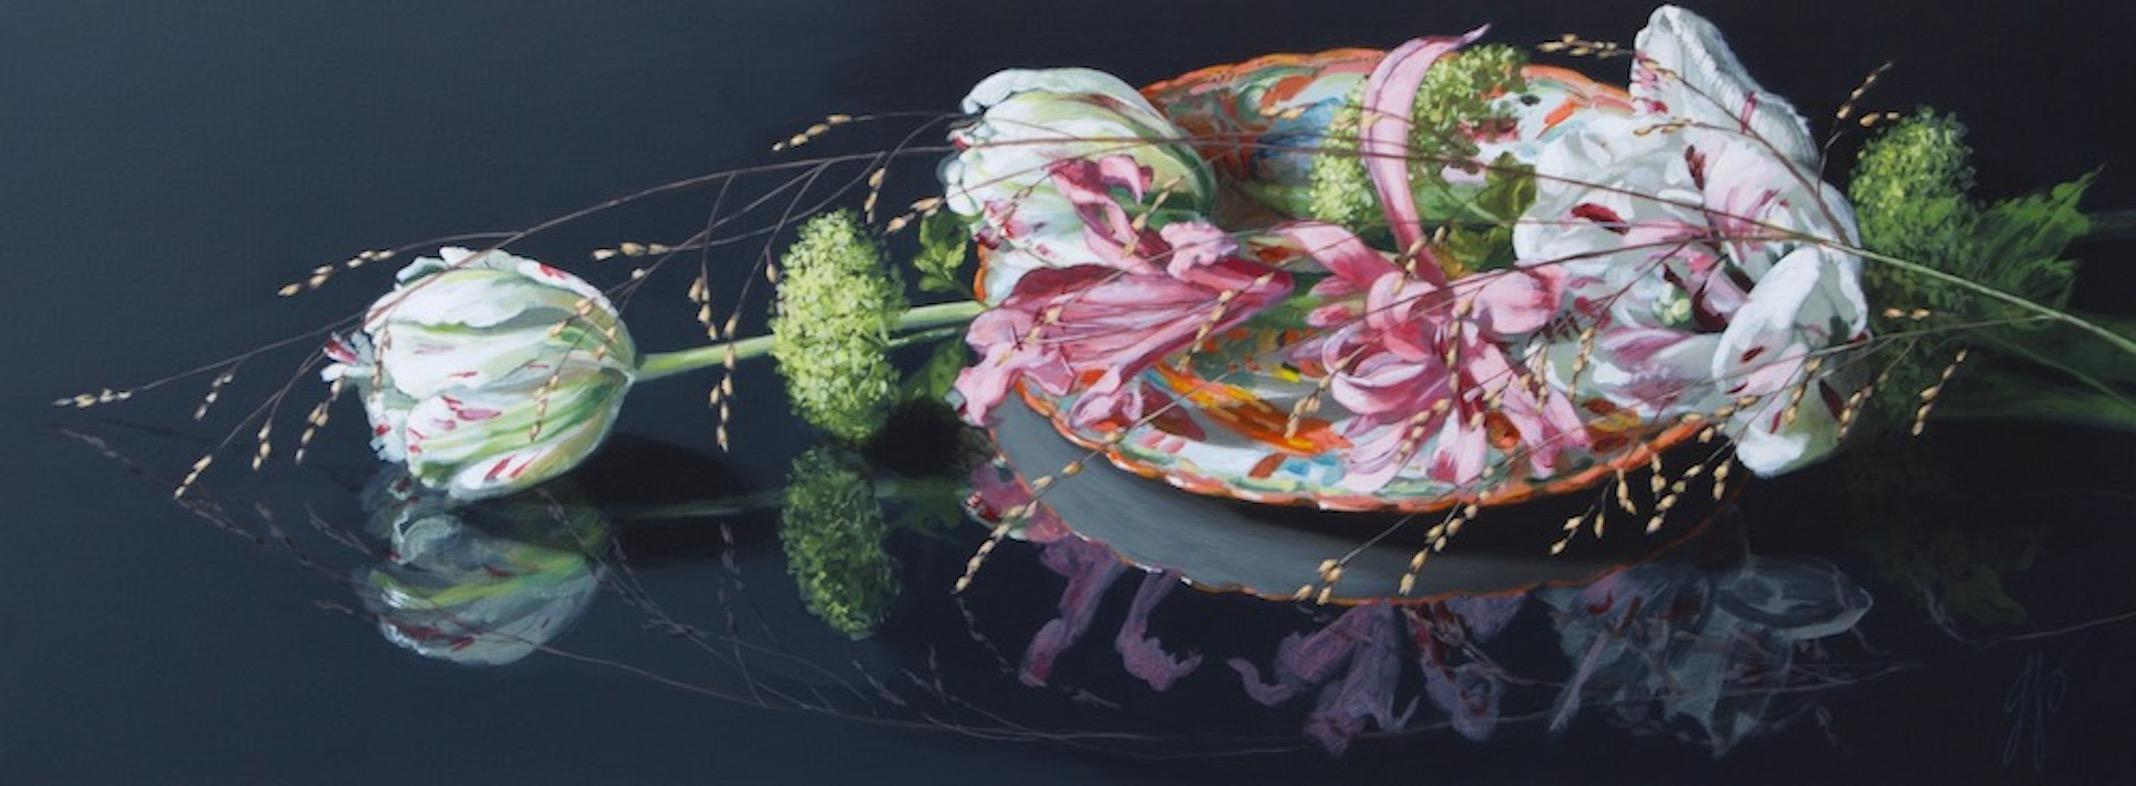 ''Bouquet with Tulips'' Contemporary Still Life with Porcelain and Flowers